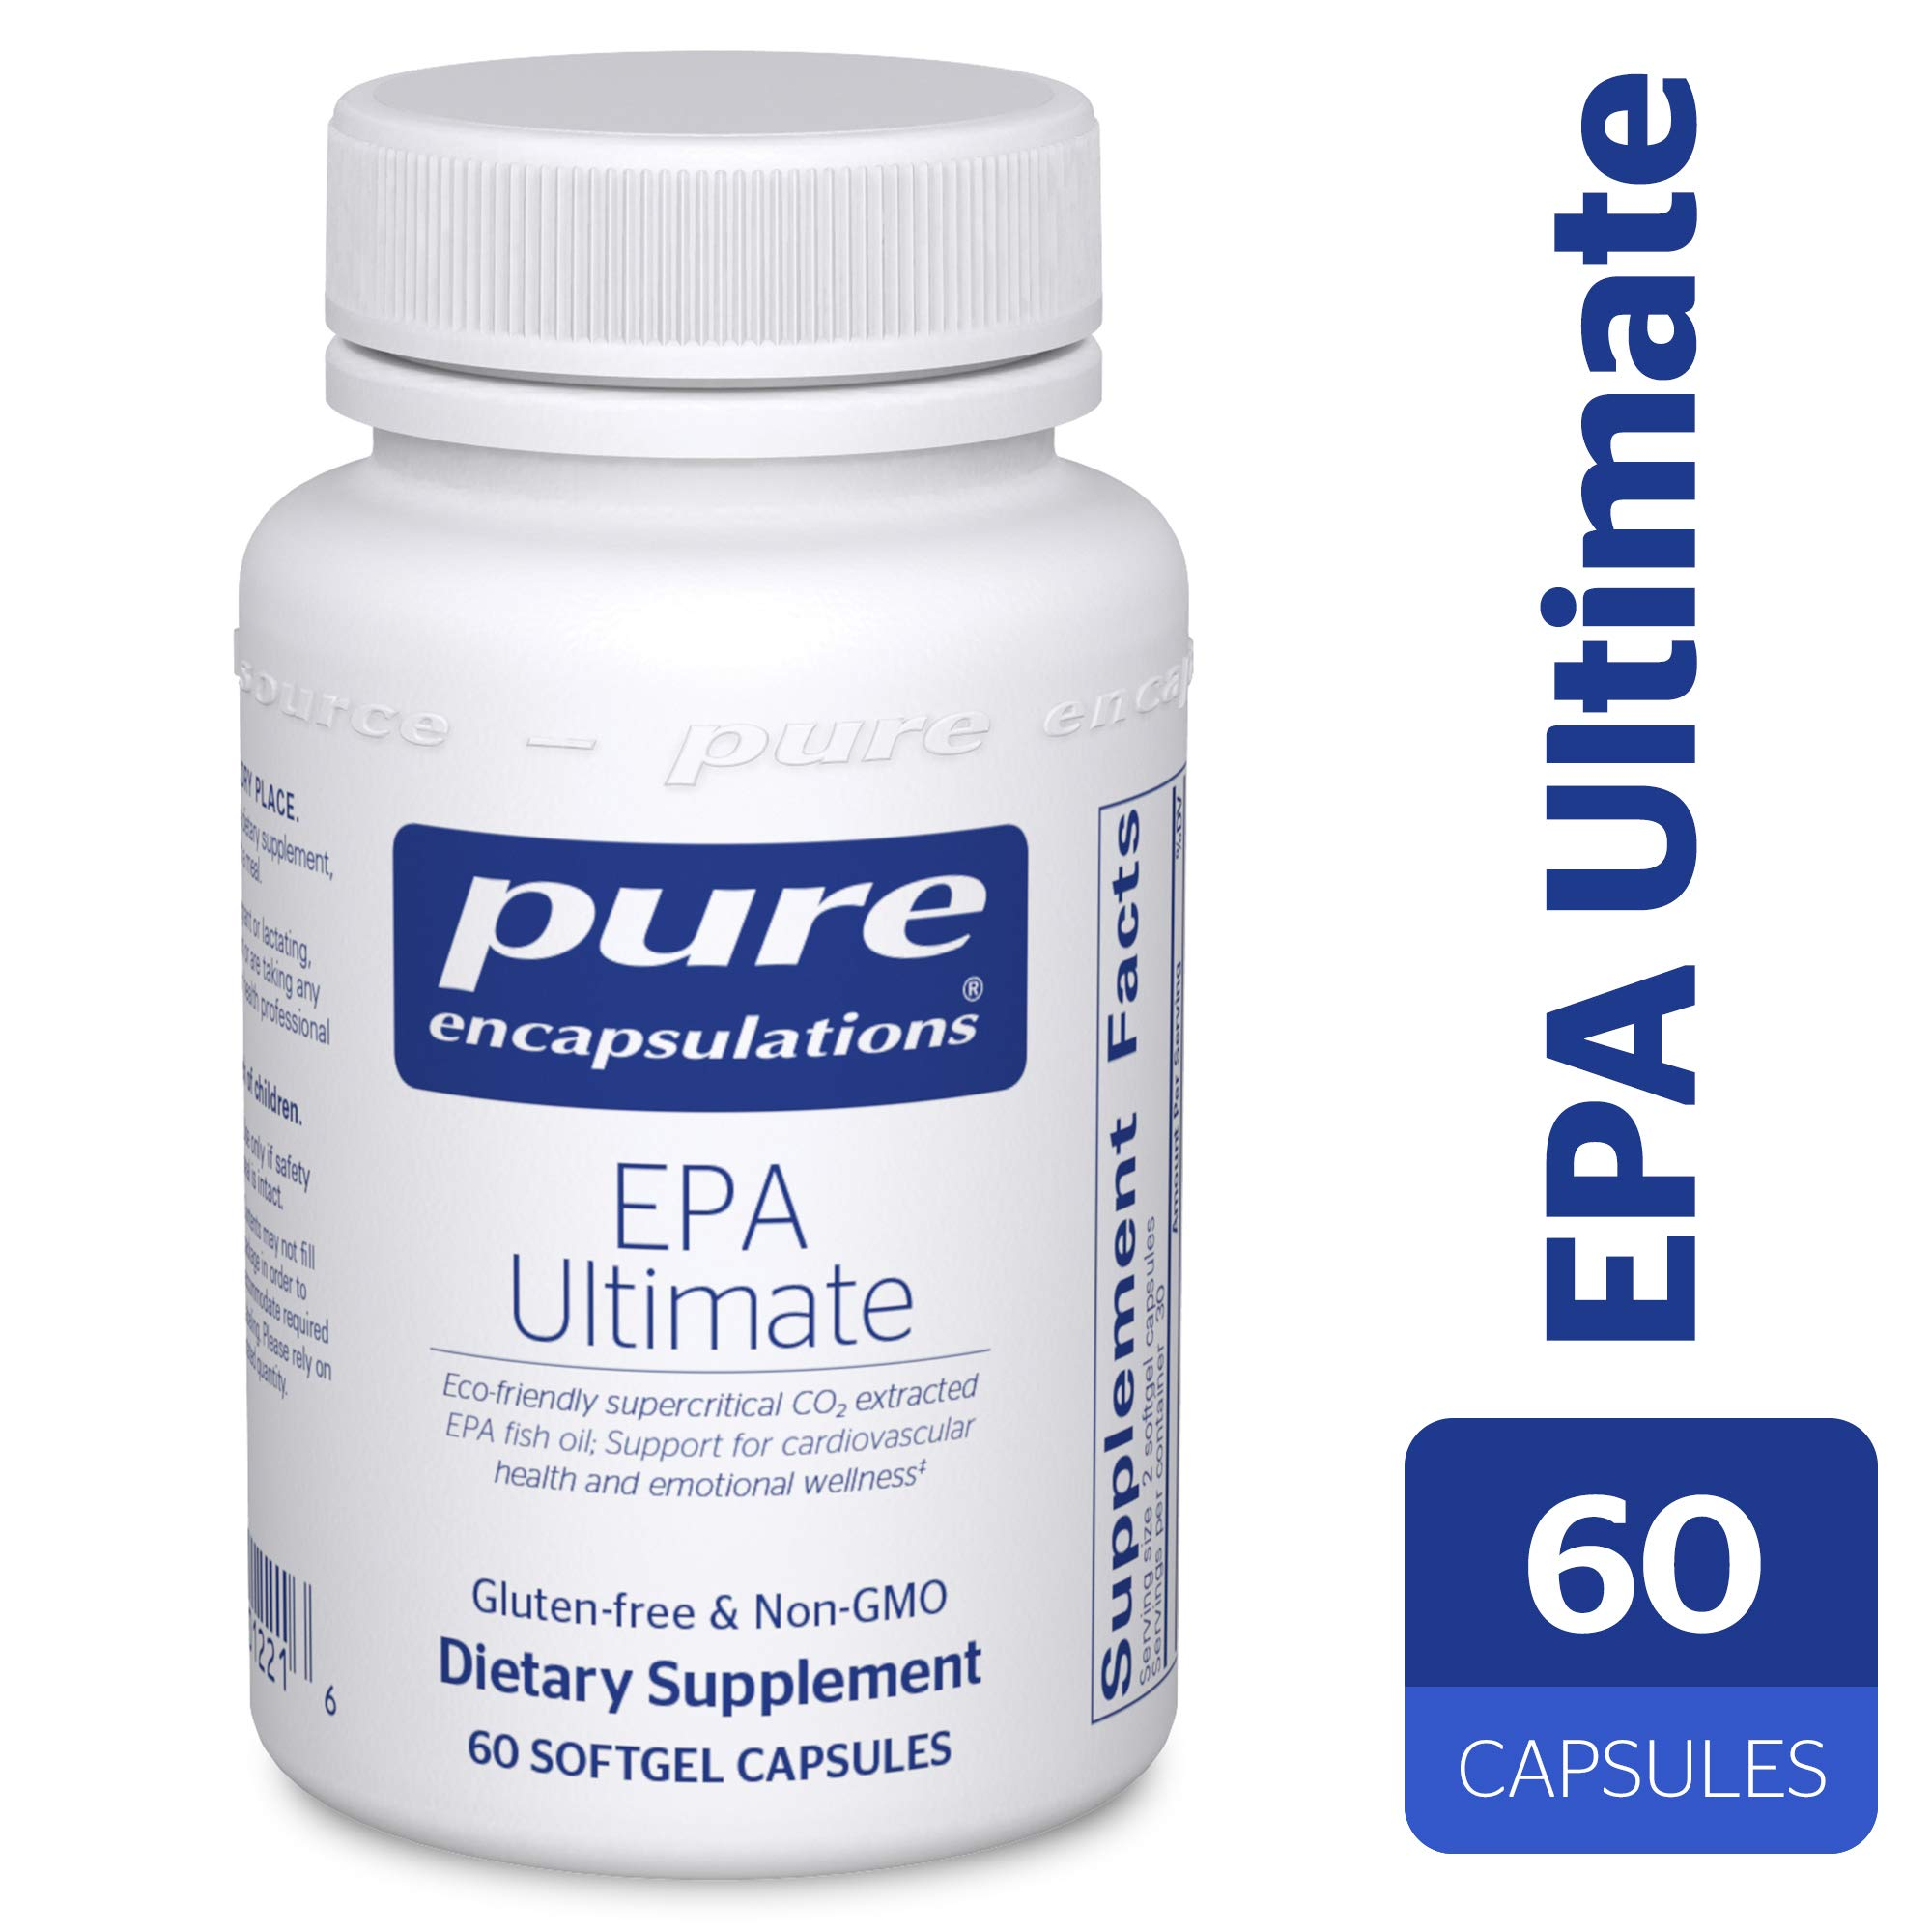 Pure Encapsulations - EPA Ultimate - Eco-Friendly Supercritical CO2 Extracted EPA Fish Oil Concentrate - 60 Softgel Capsules